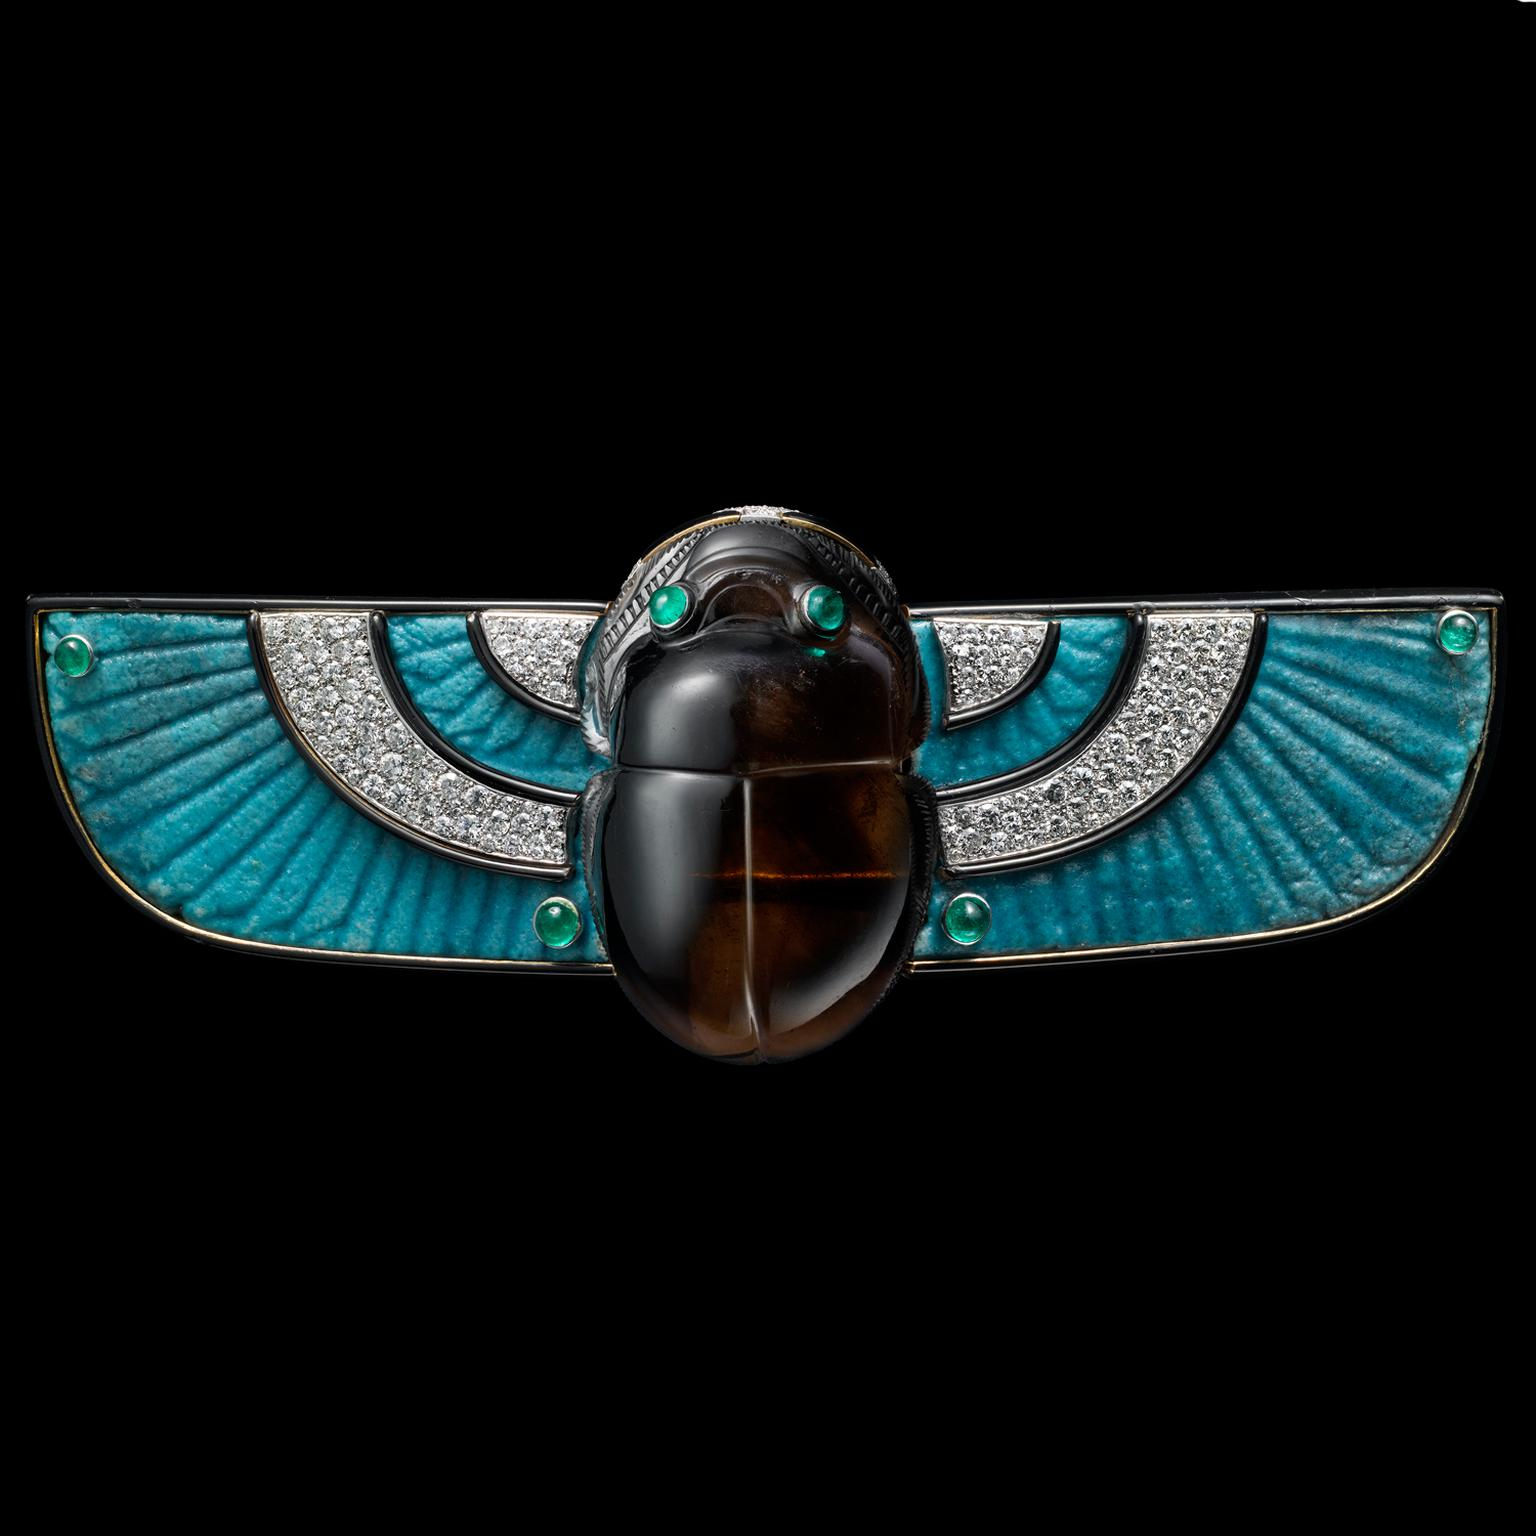 Cartier Scarab brooch 1924